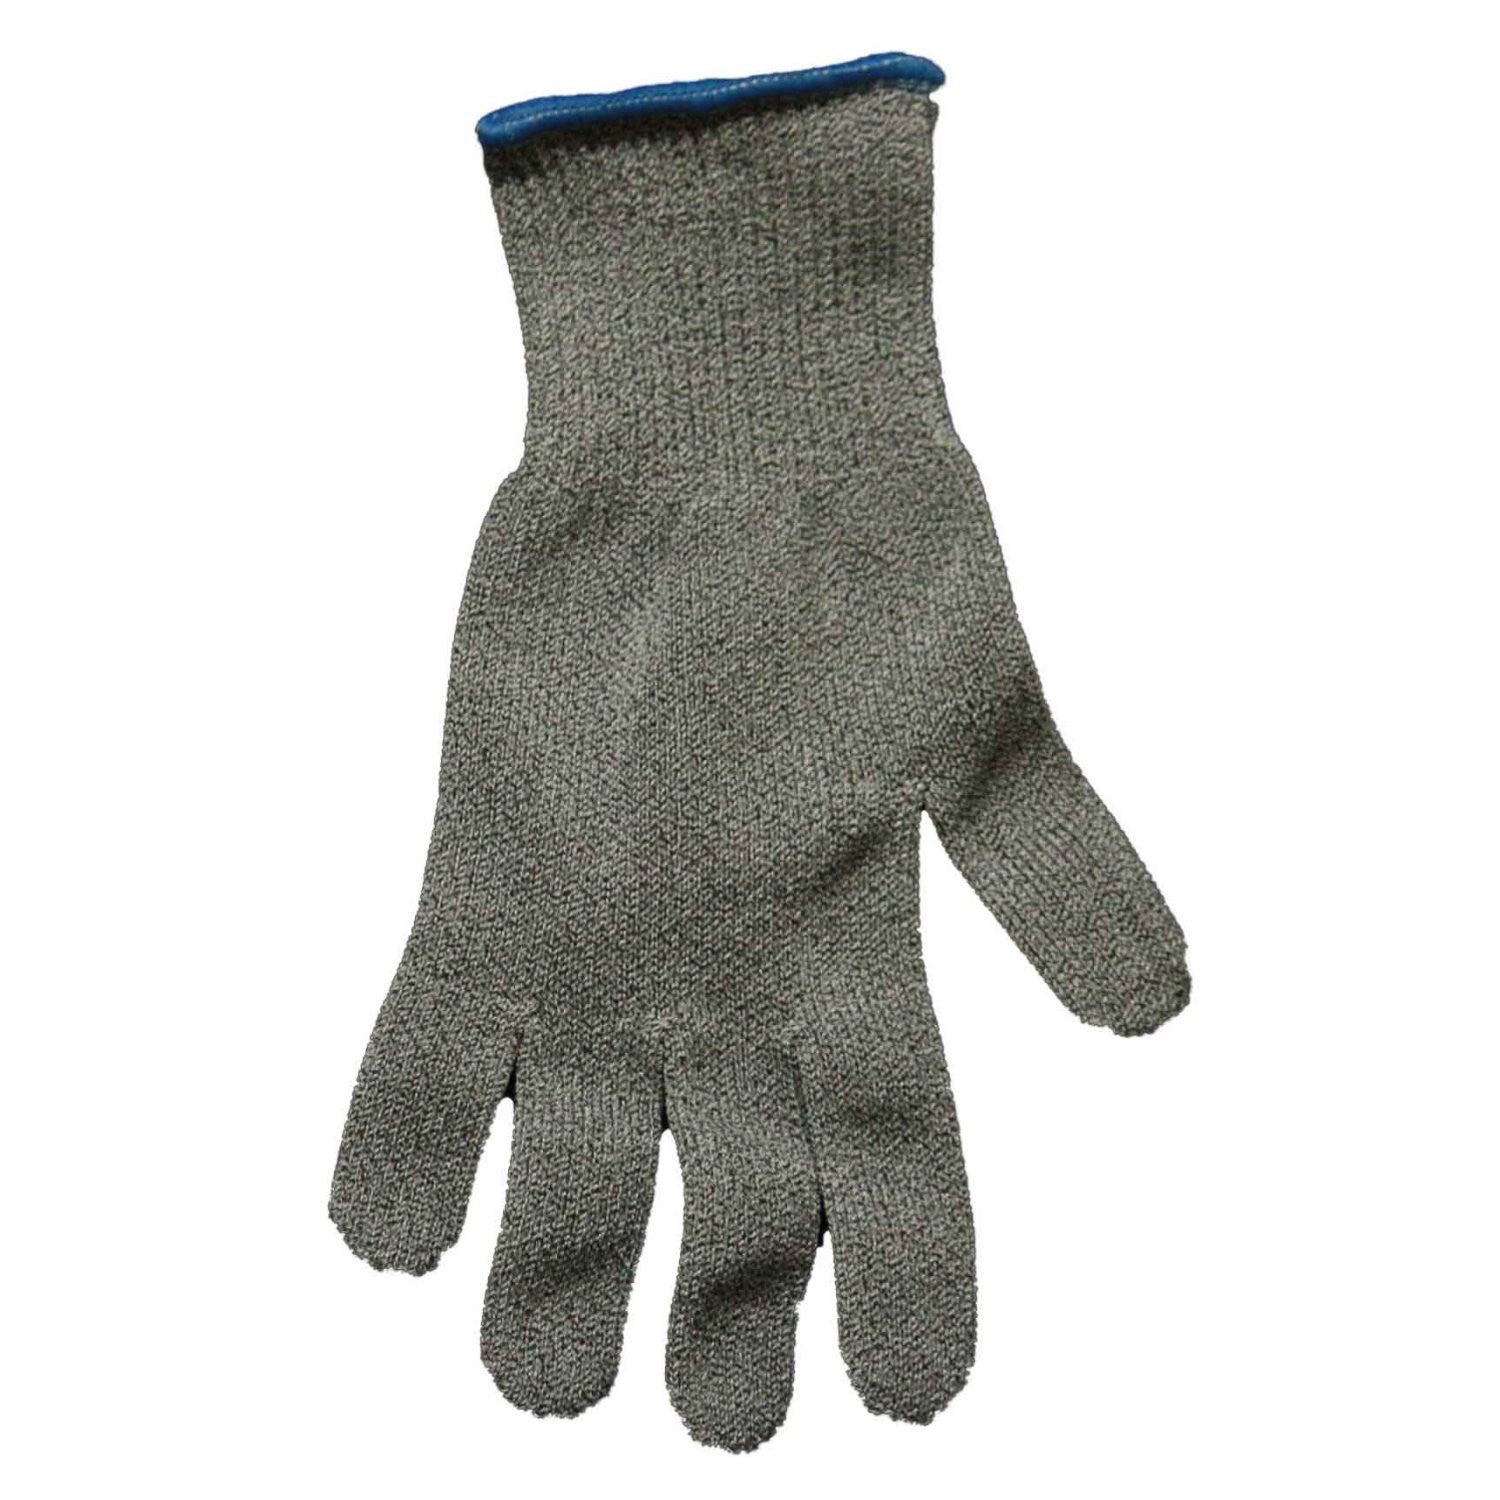 Large Cut Resistant Glove - Polar Bear PawGard